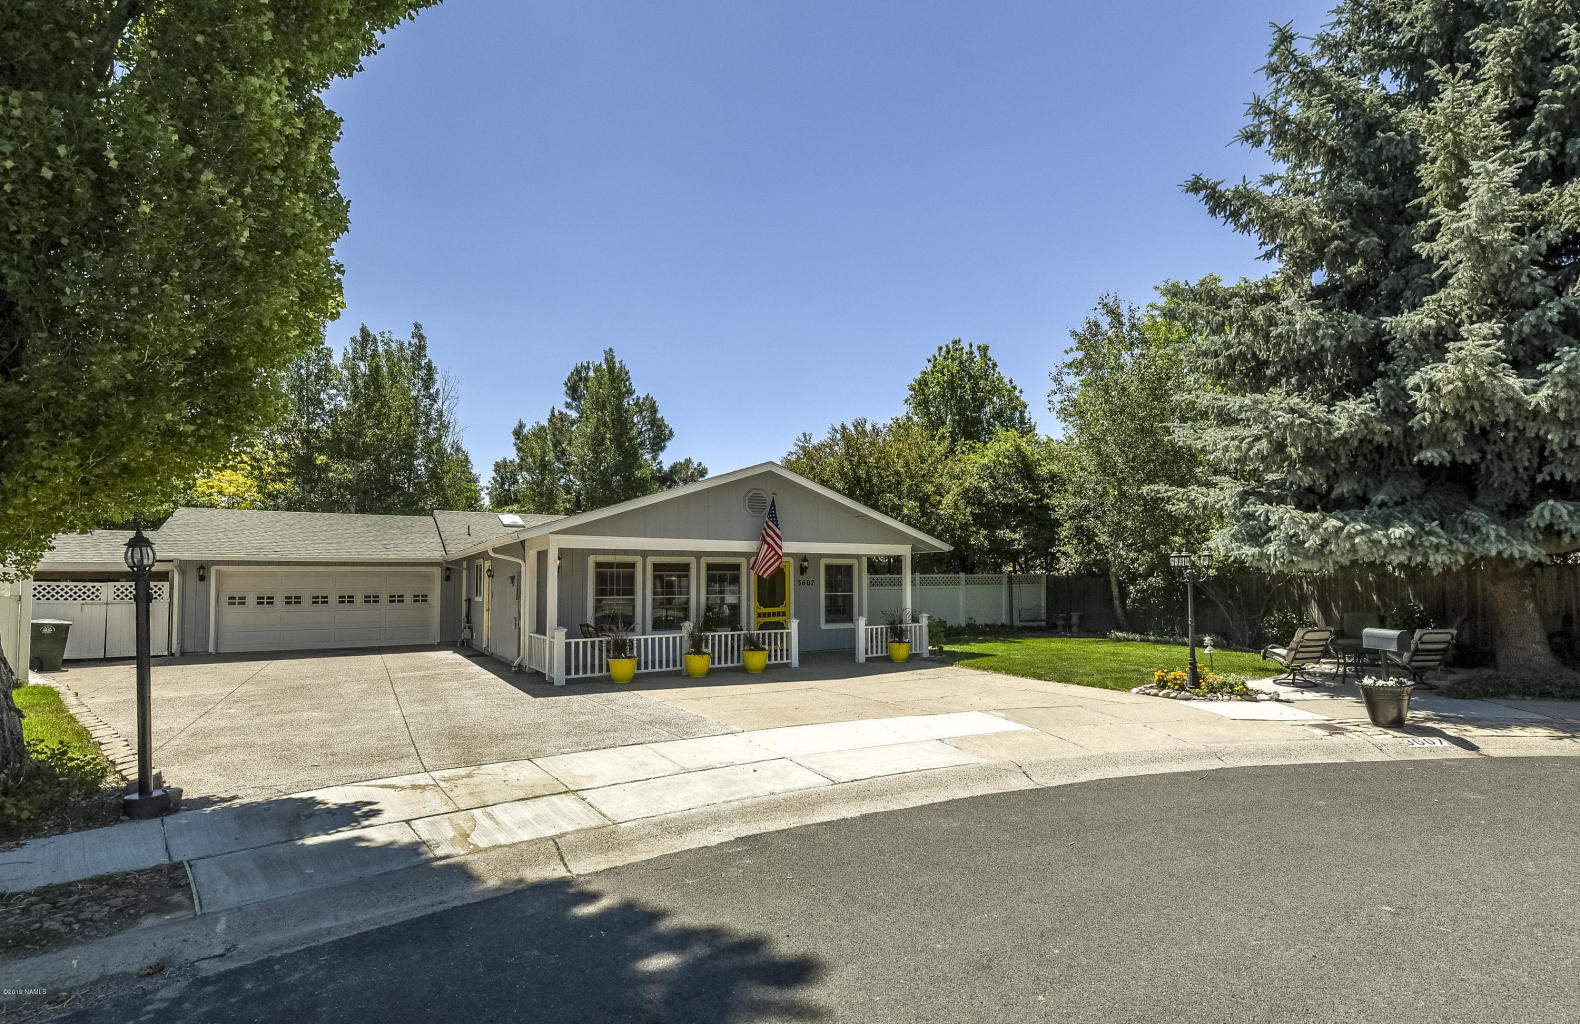 3607 E Racoon Way – Sold!